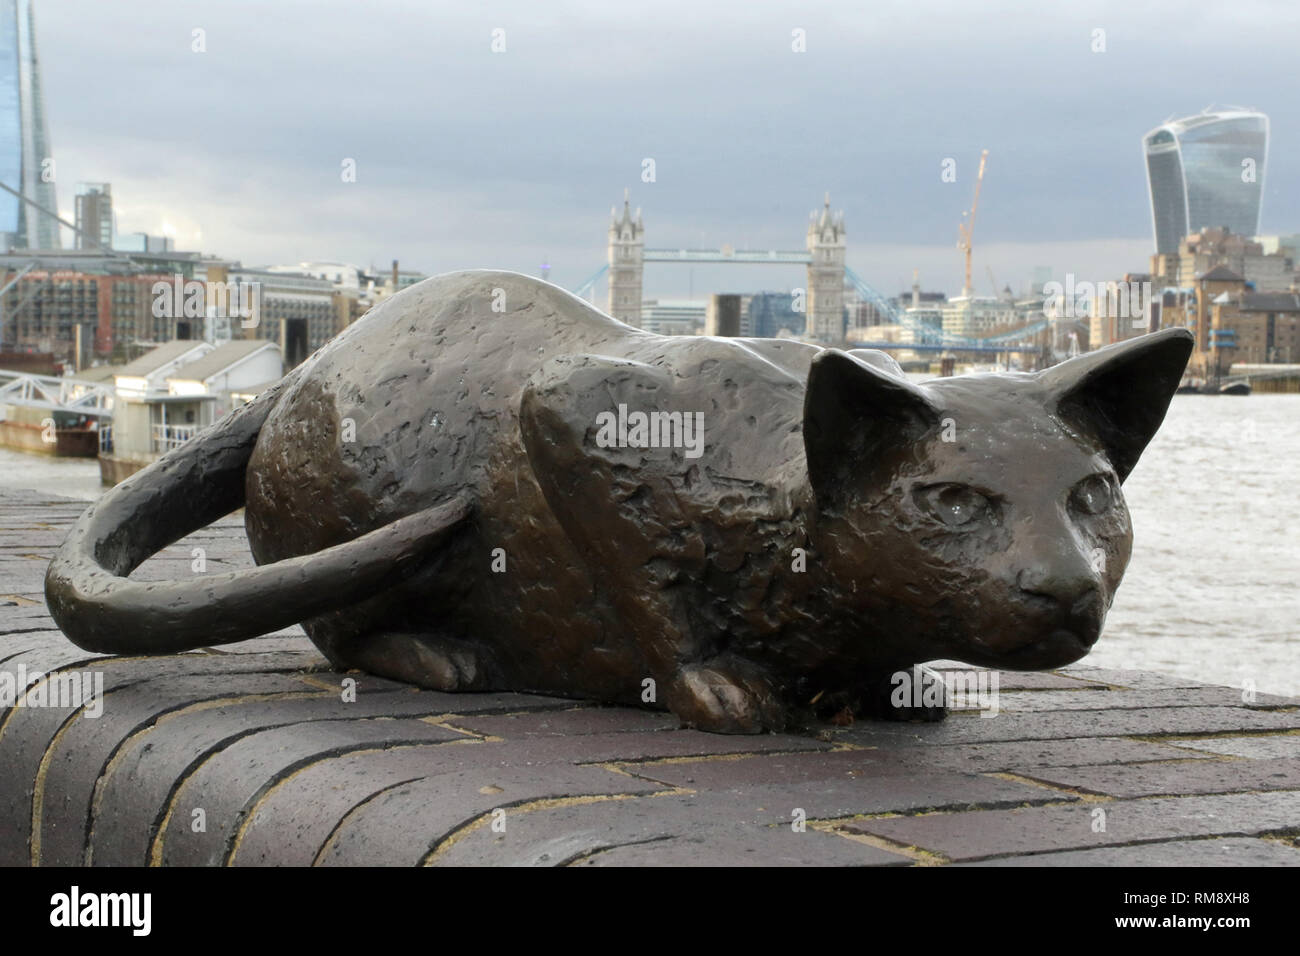 Statue of the cat of Dr Alfred Salter (16 June 1873 – 24 August 1945) in Bermondsey who was a British medical practitioner and Labour Party politician. - Stock Image